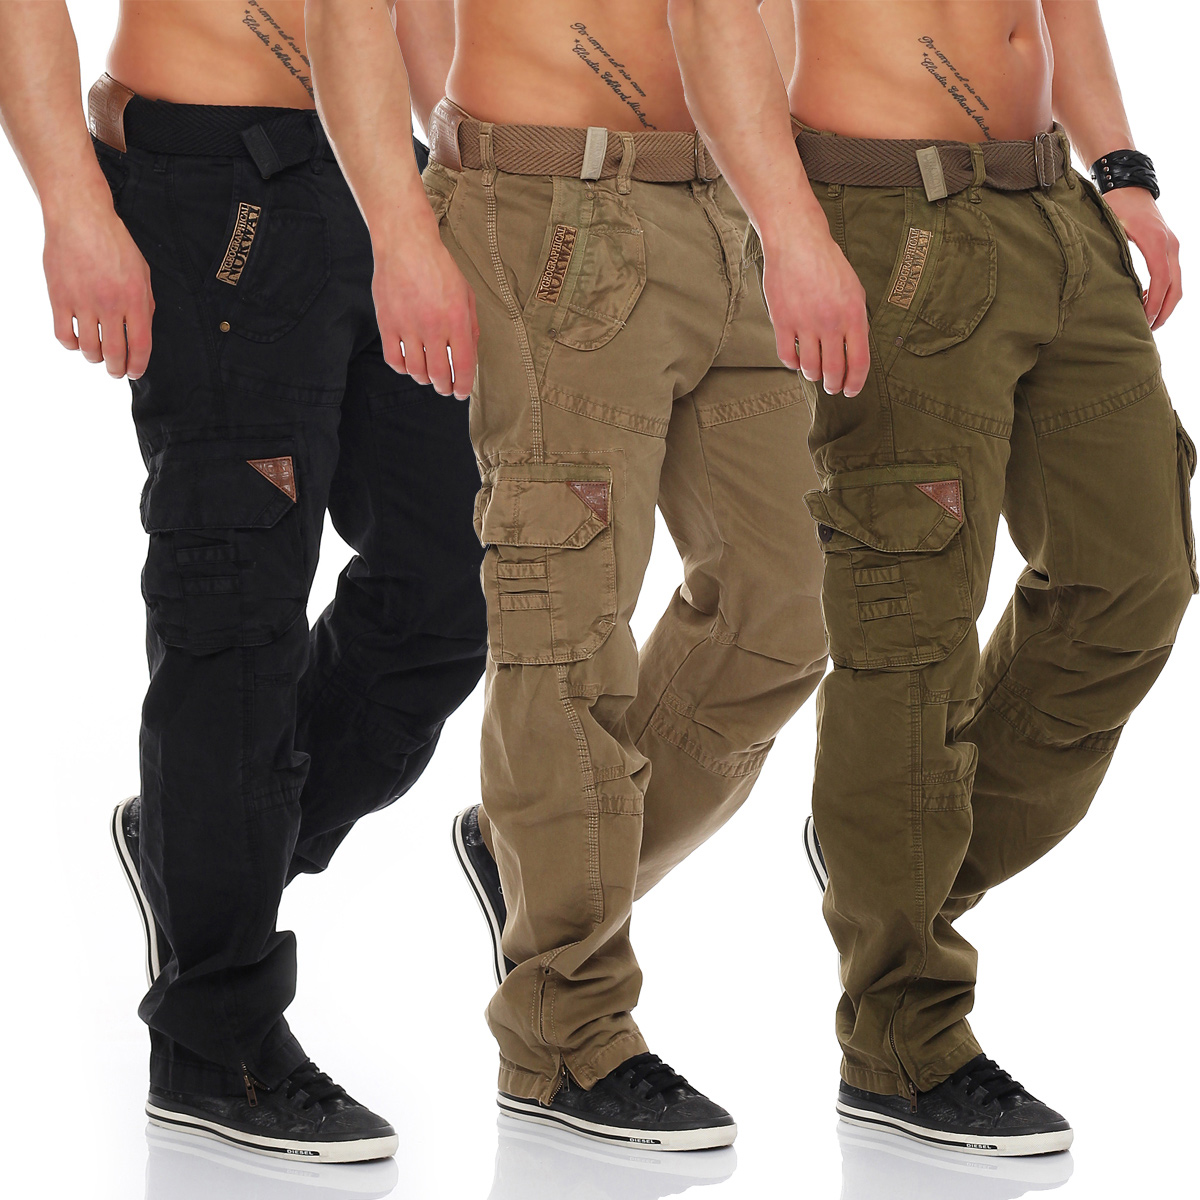 Geographical Norway Men/'s Trousers Cargo Shorts Leisure Army Pants